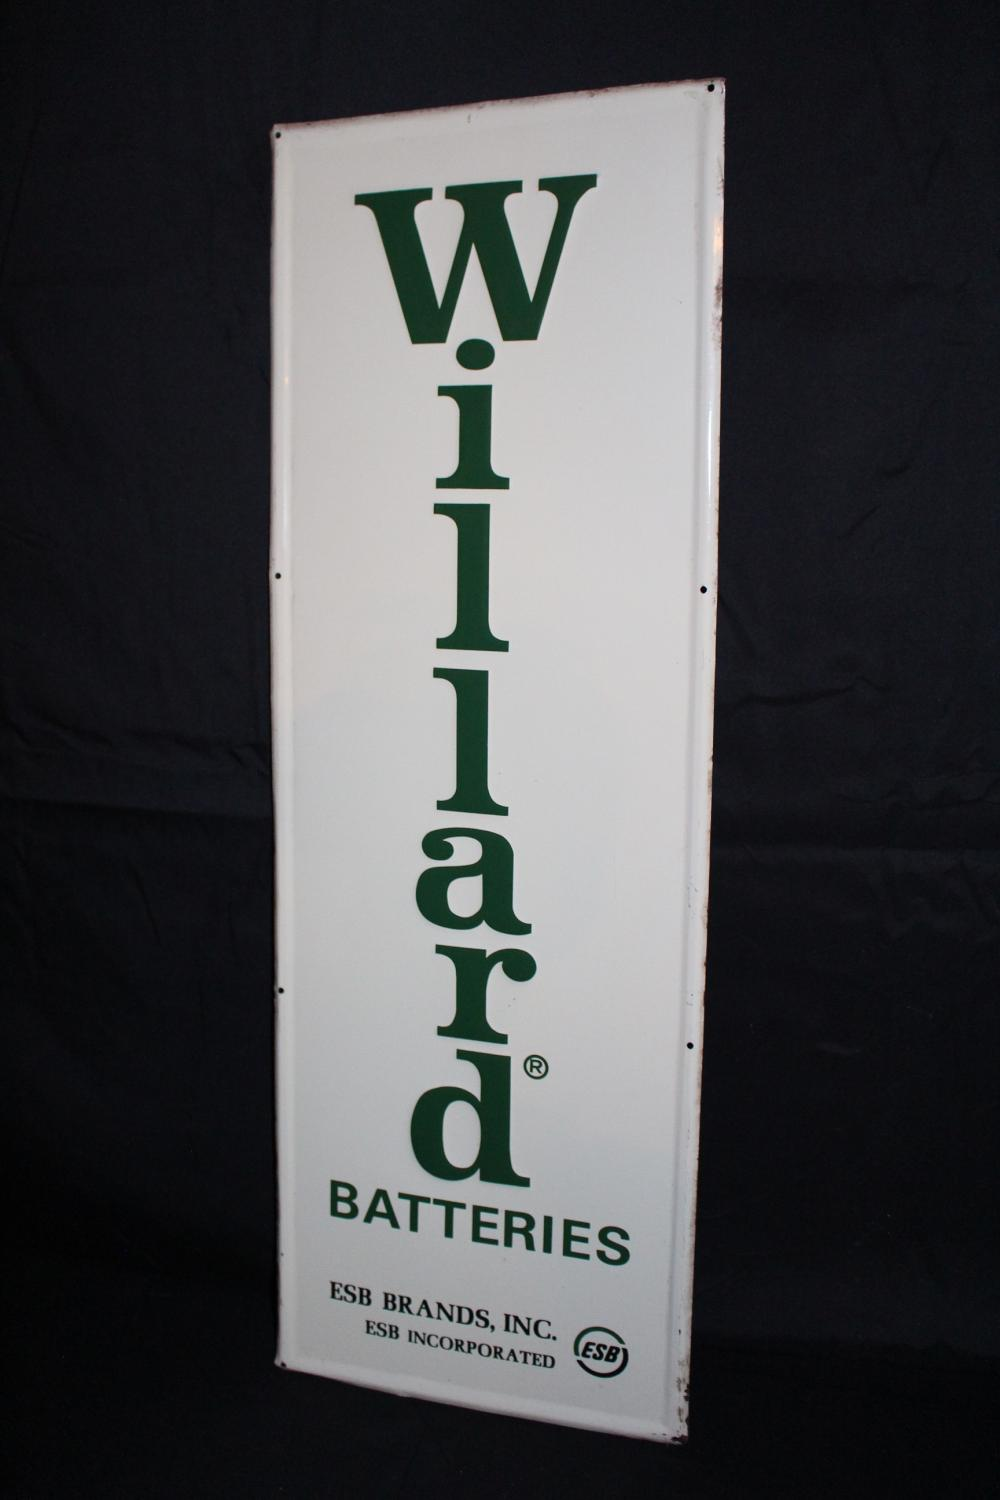 WILLARD BATTERIES SIGN